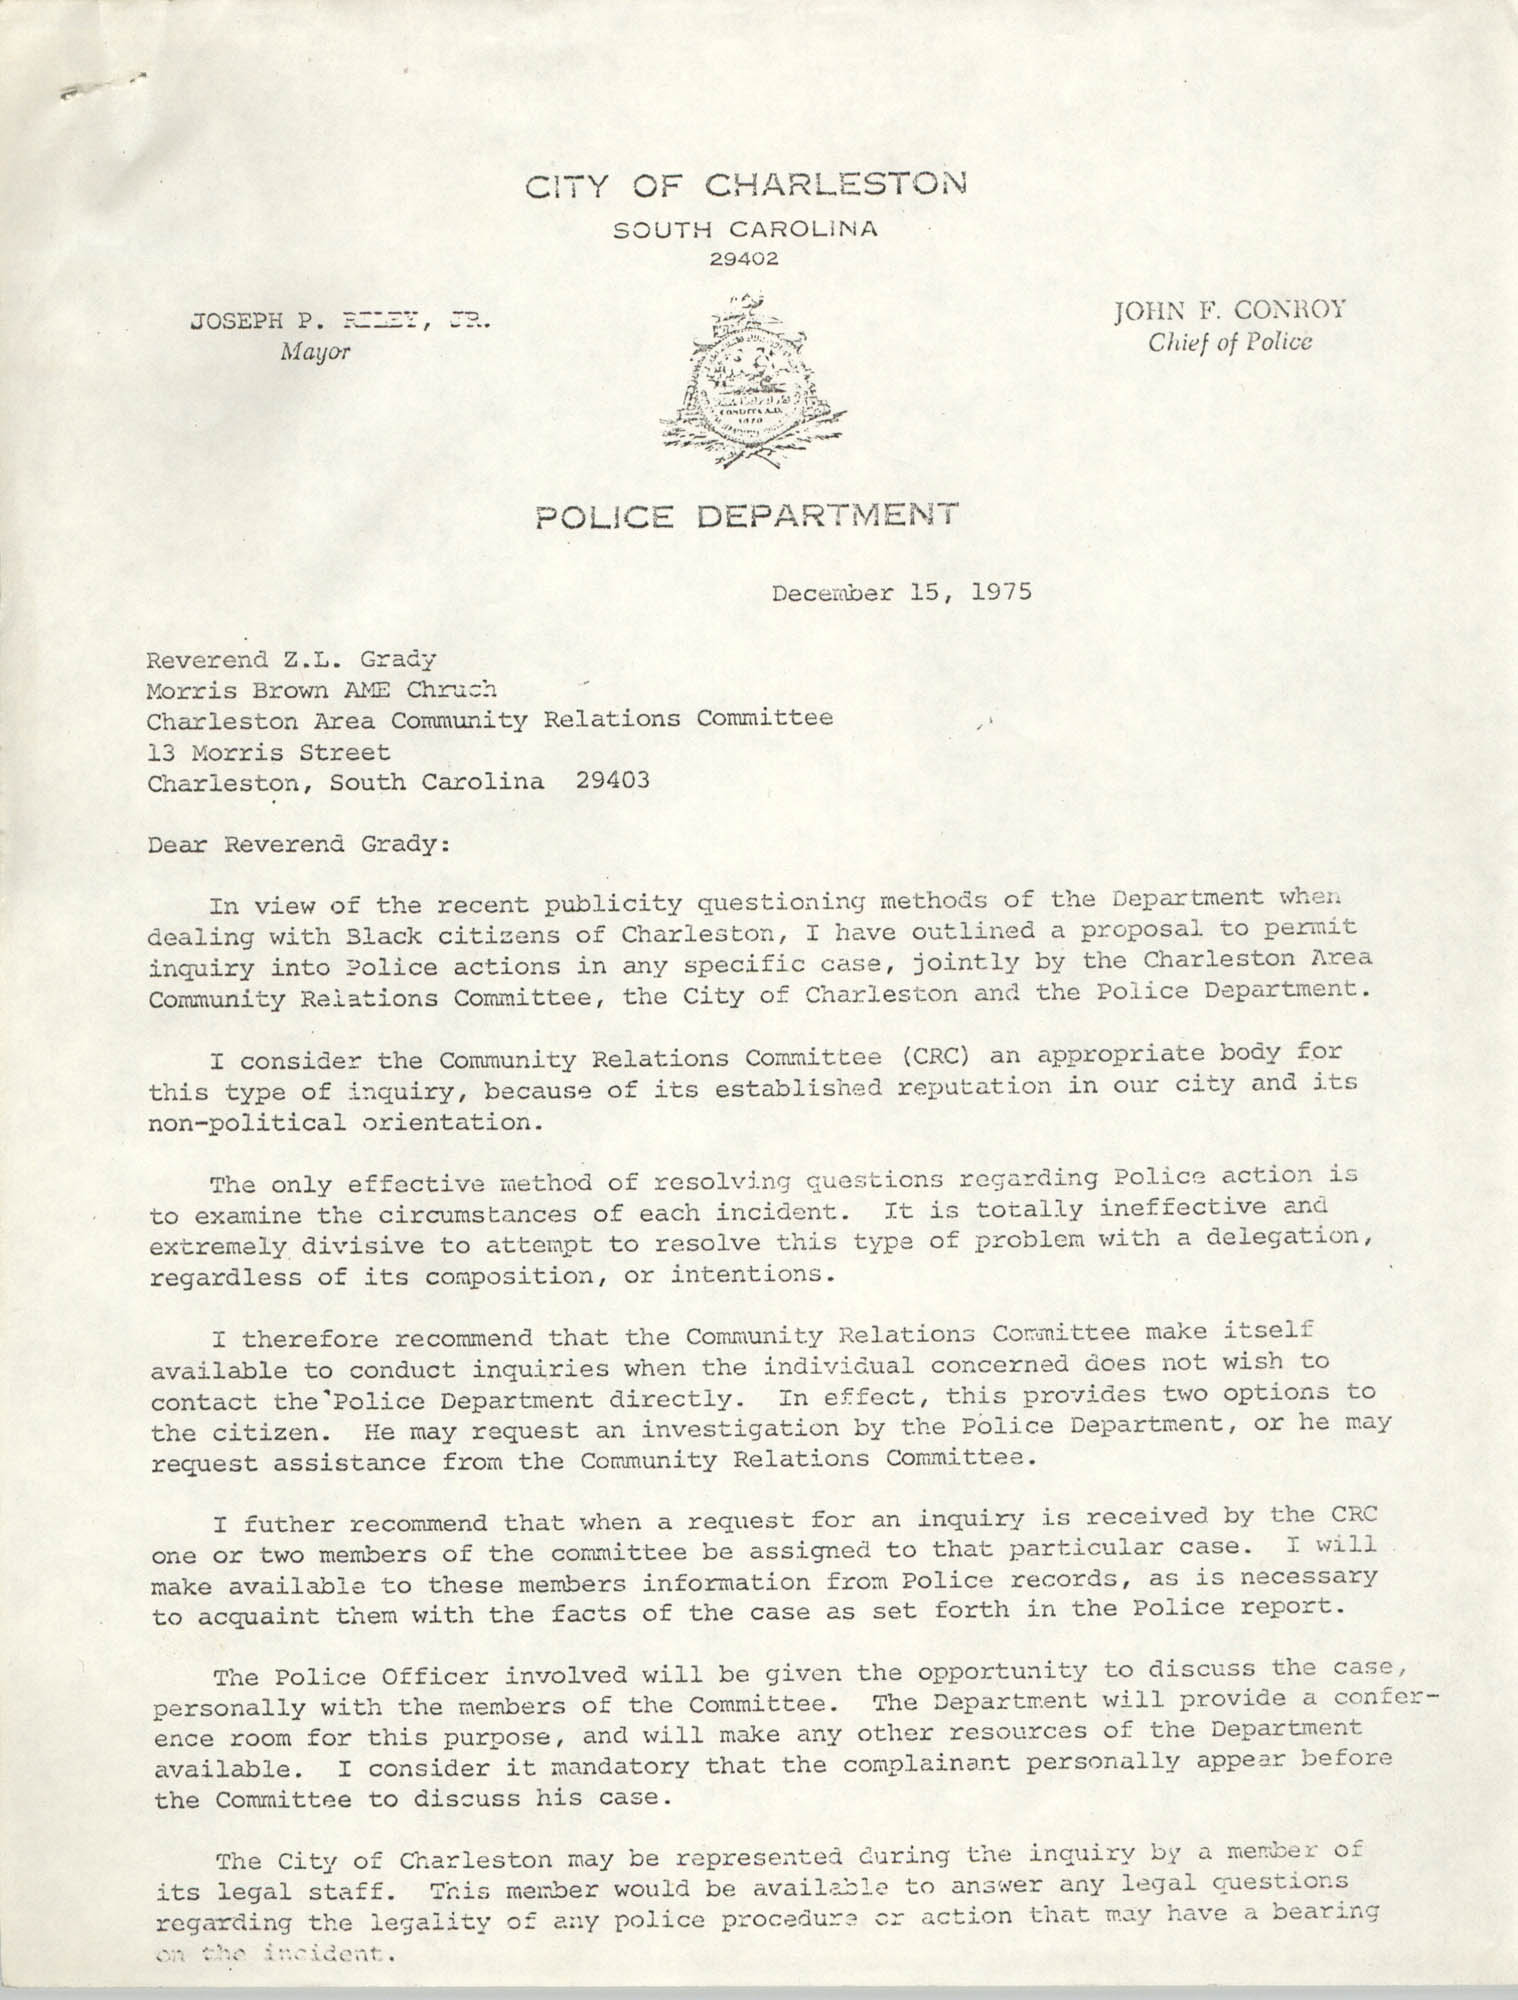 Letter from John F. Conroy to Z. L. Grady, December 15, 1975